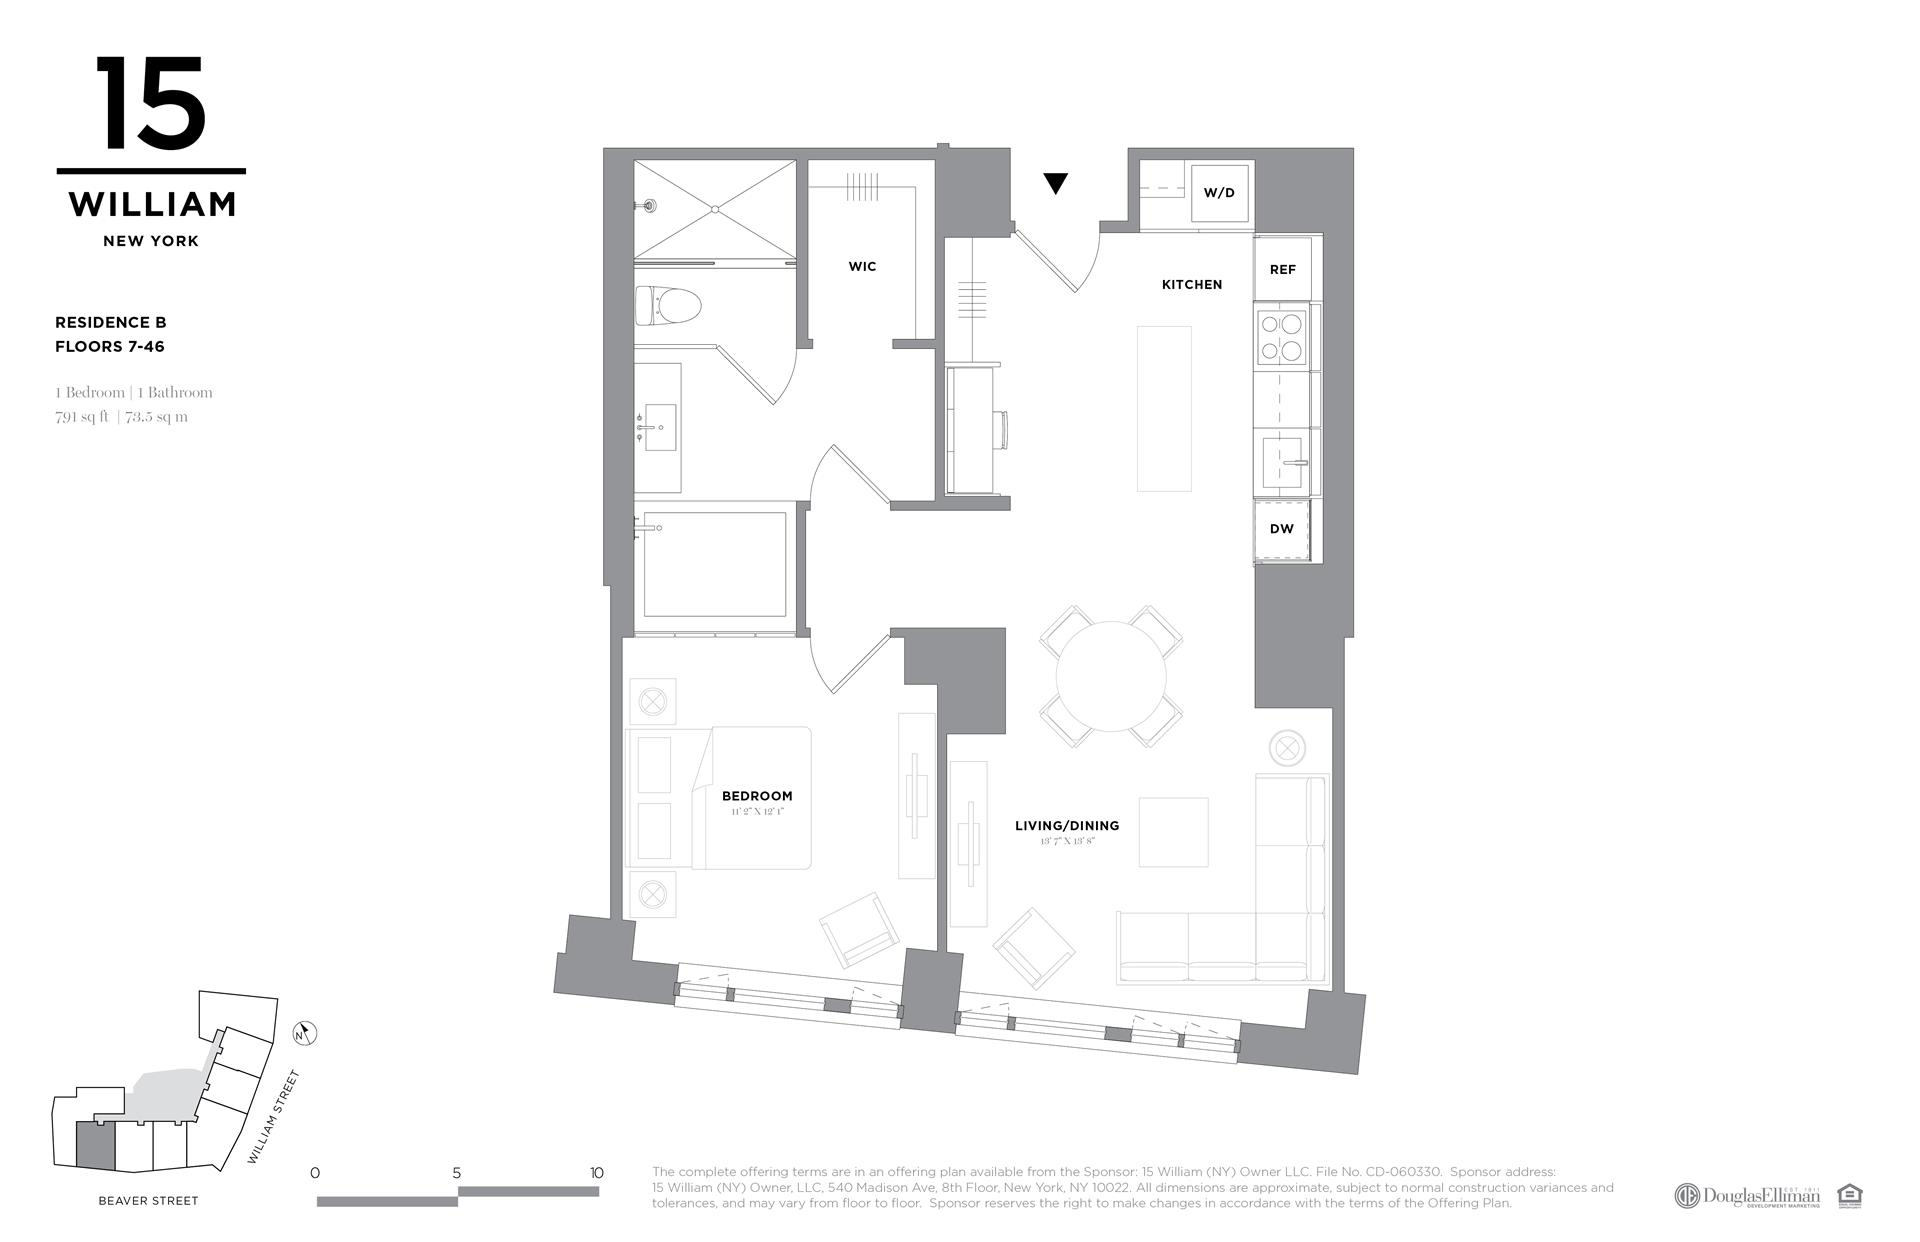 Floor plan of 15 William, 15 William St, 43B - Financial District, New York